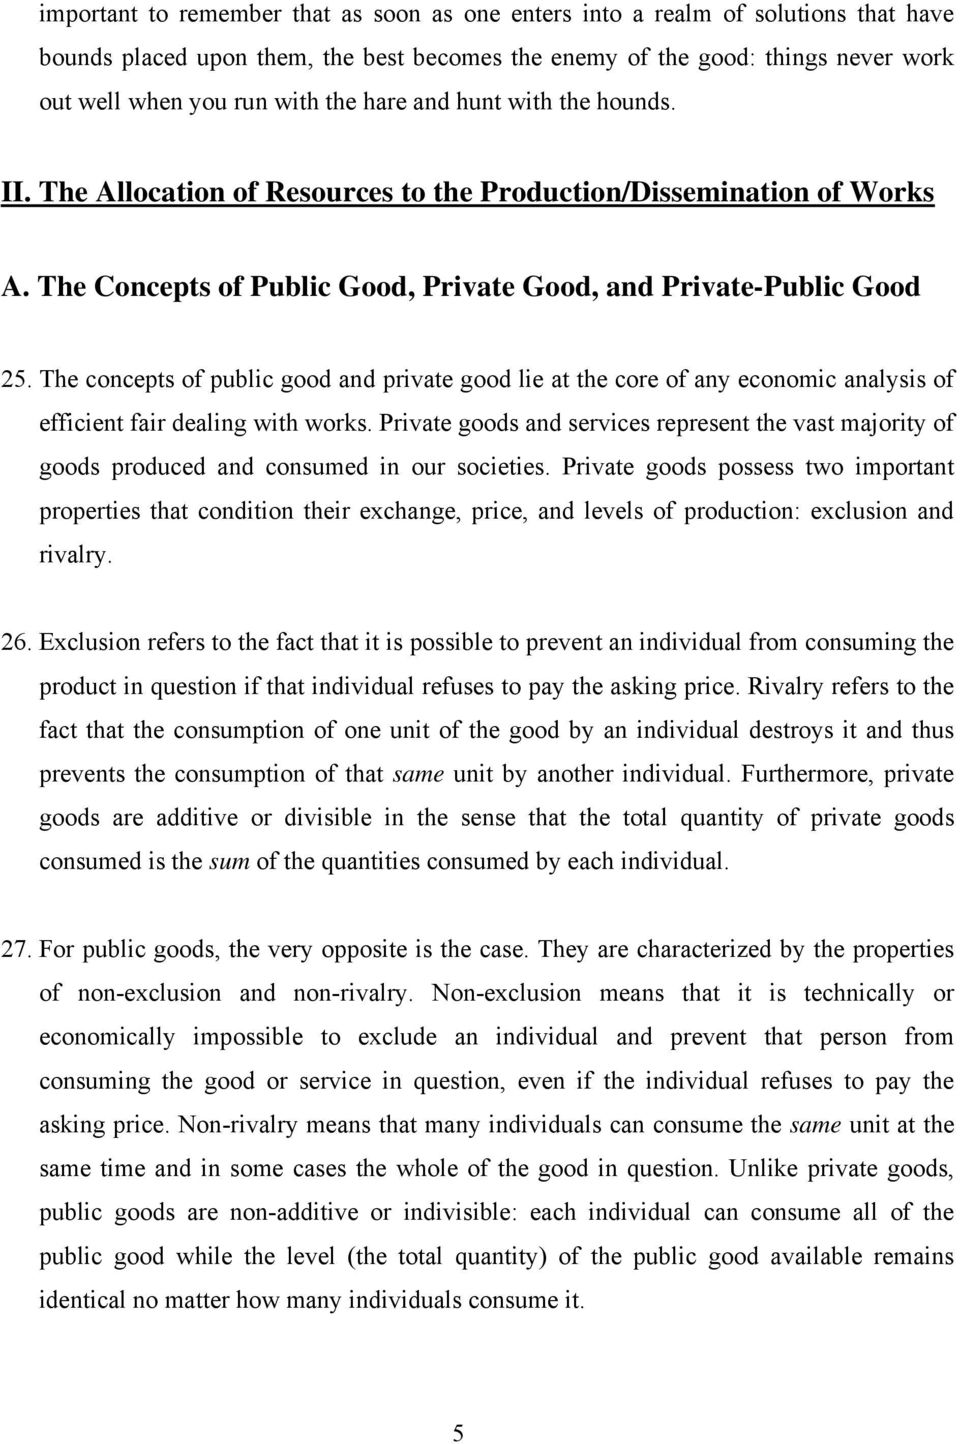 The concepts of public good and private good lie at the core of any economic analysis of efficient fair dealing with works.